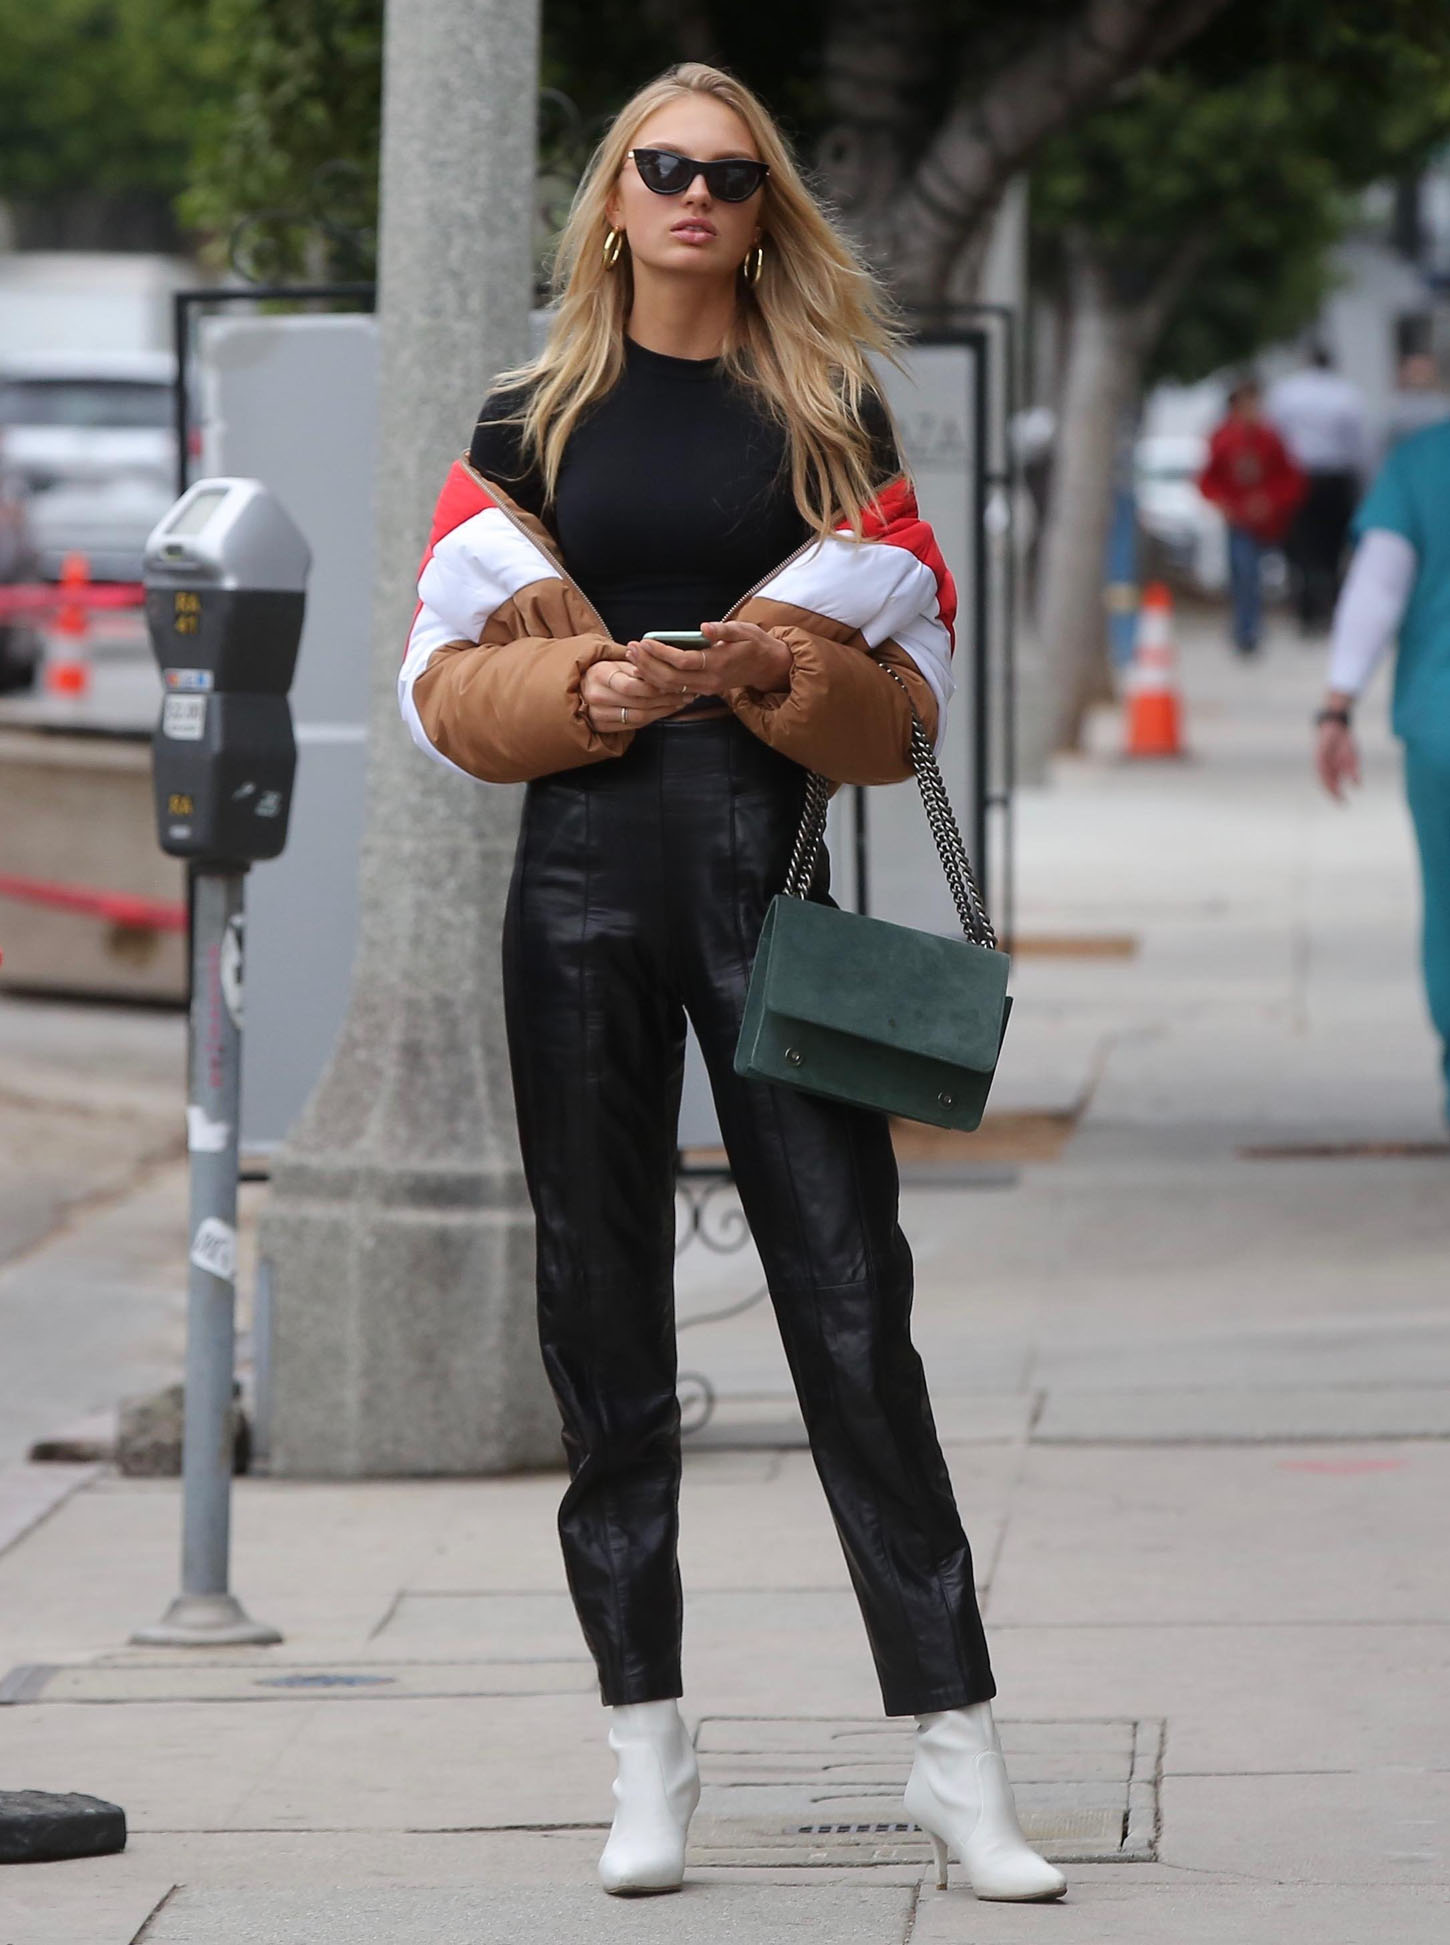 , Beverly Hills, CA - 11/02/2017 - Romee Stridj Shopping on Robertson Boulevard  -PICTURED: Romee Stridj -, Image: 354488823, License: Rights-managed, Restrictions: , Model Release: no, Credit line: Profimedia, INSTAR Images